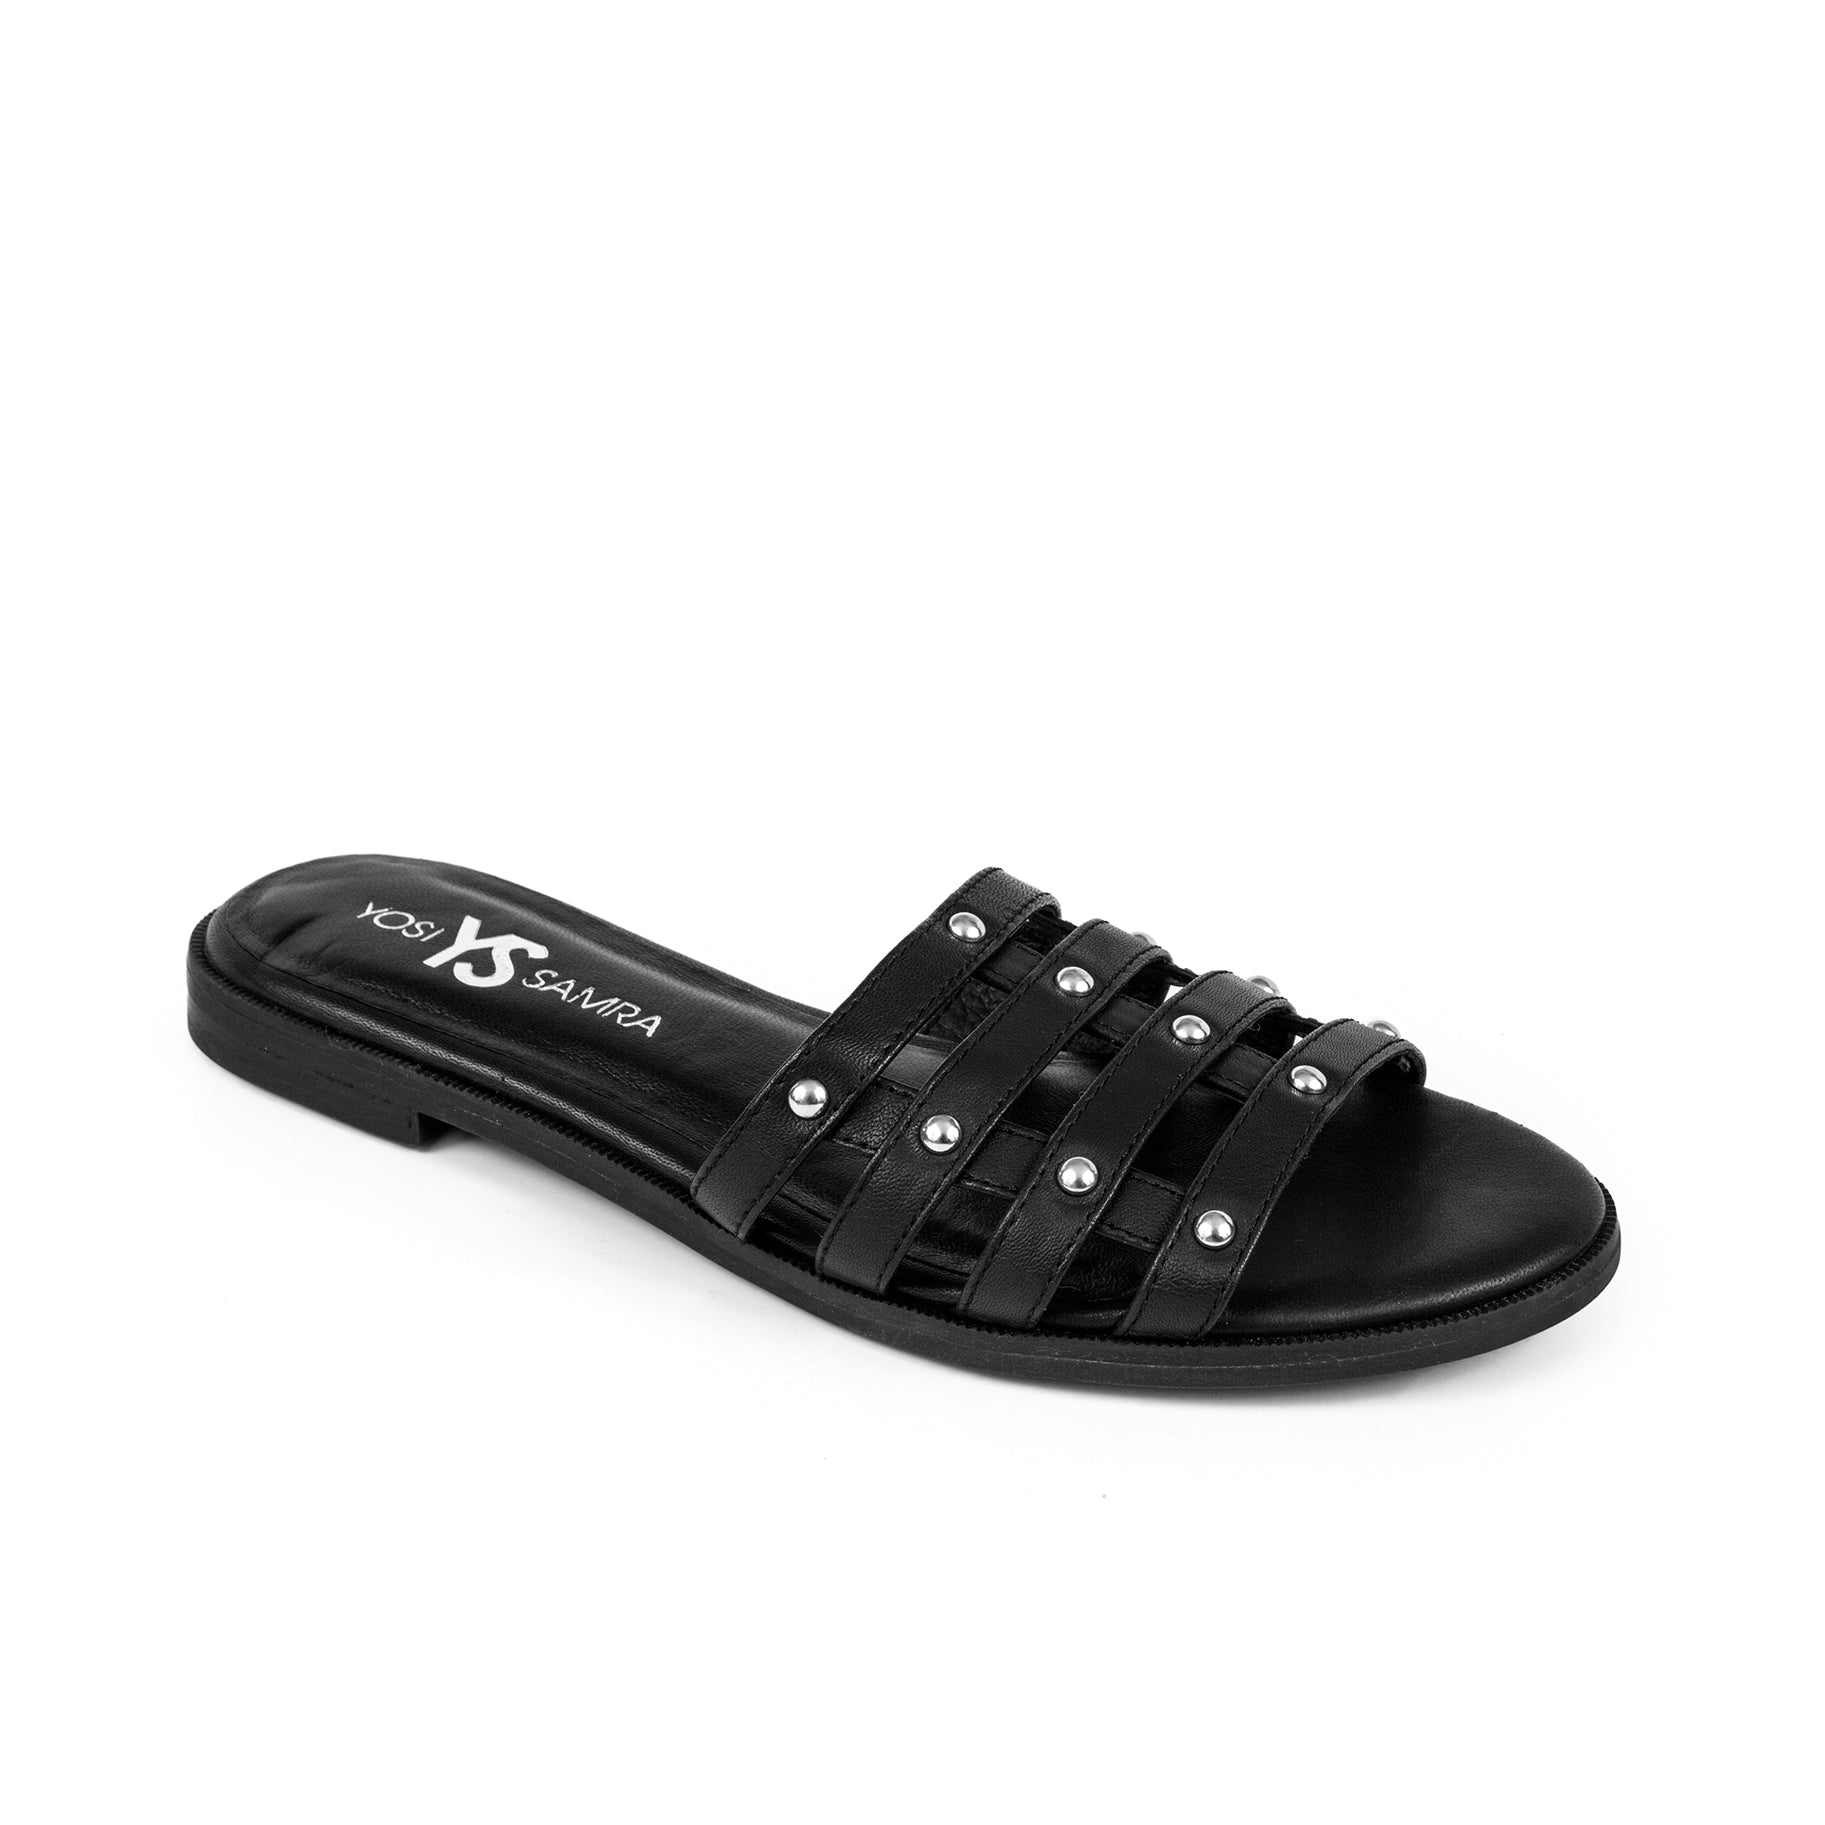 Yosi Samra Leather Slide Sandal Black Studs